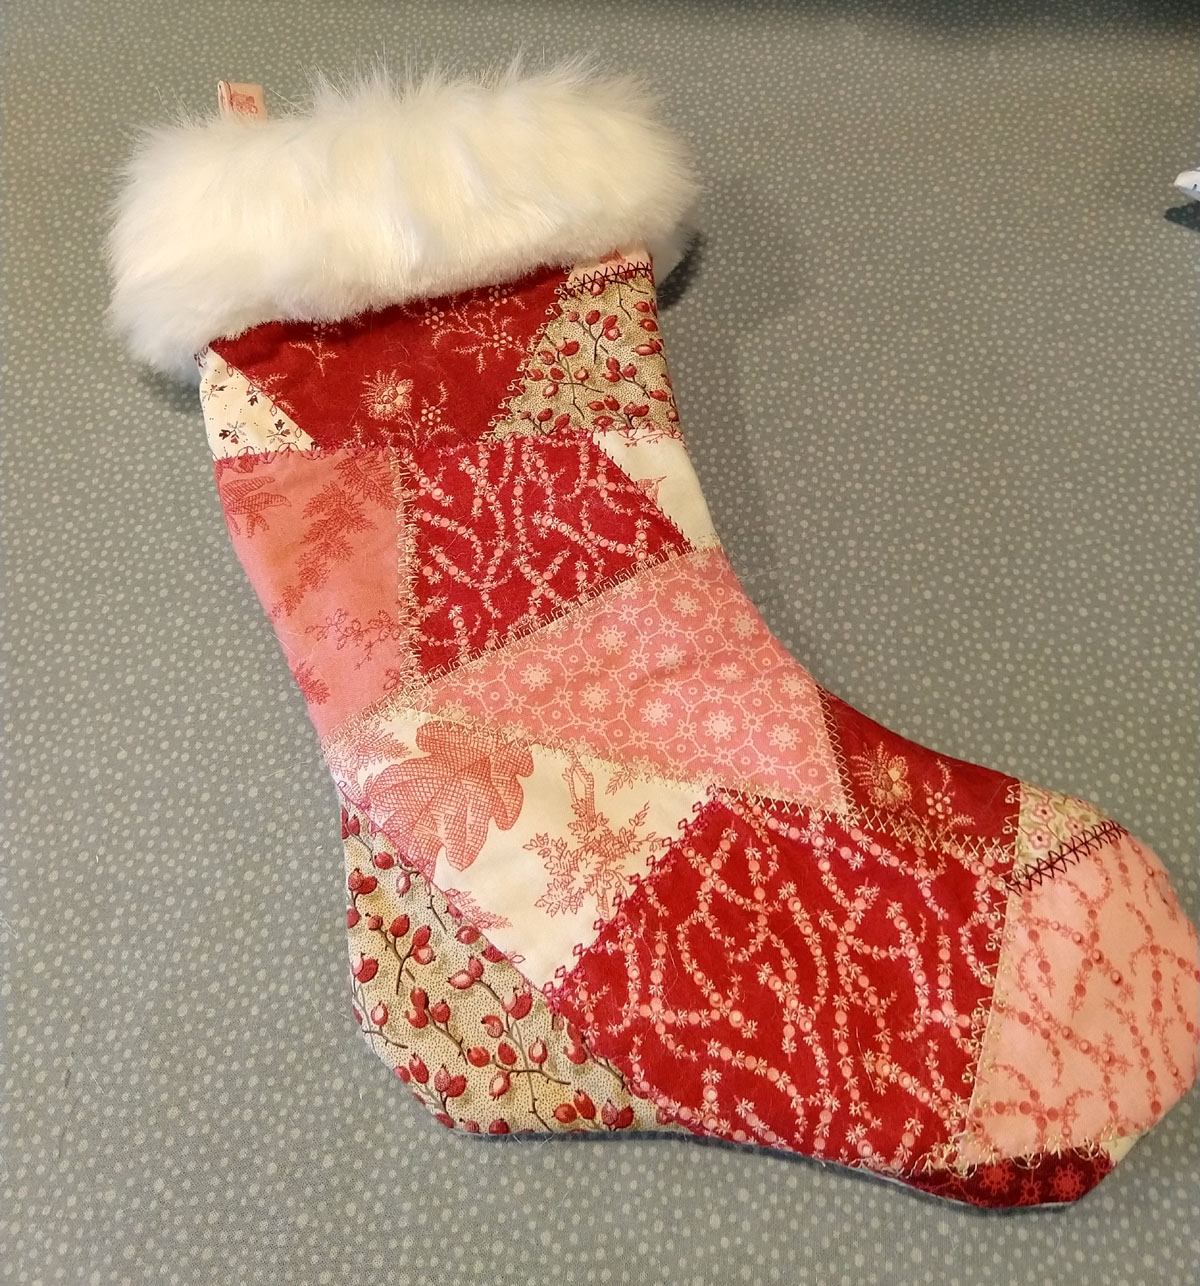 completed patchwork stocking with fur top